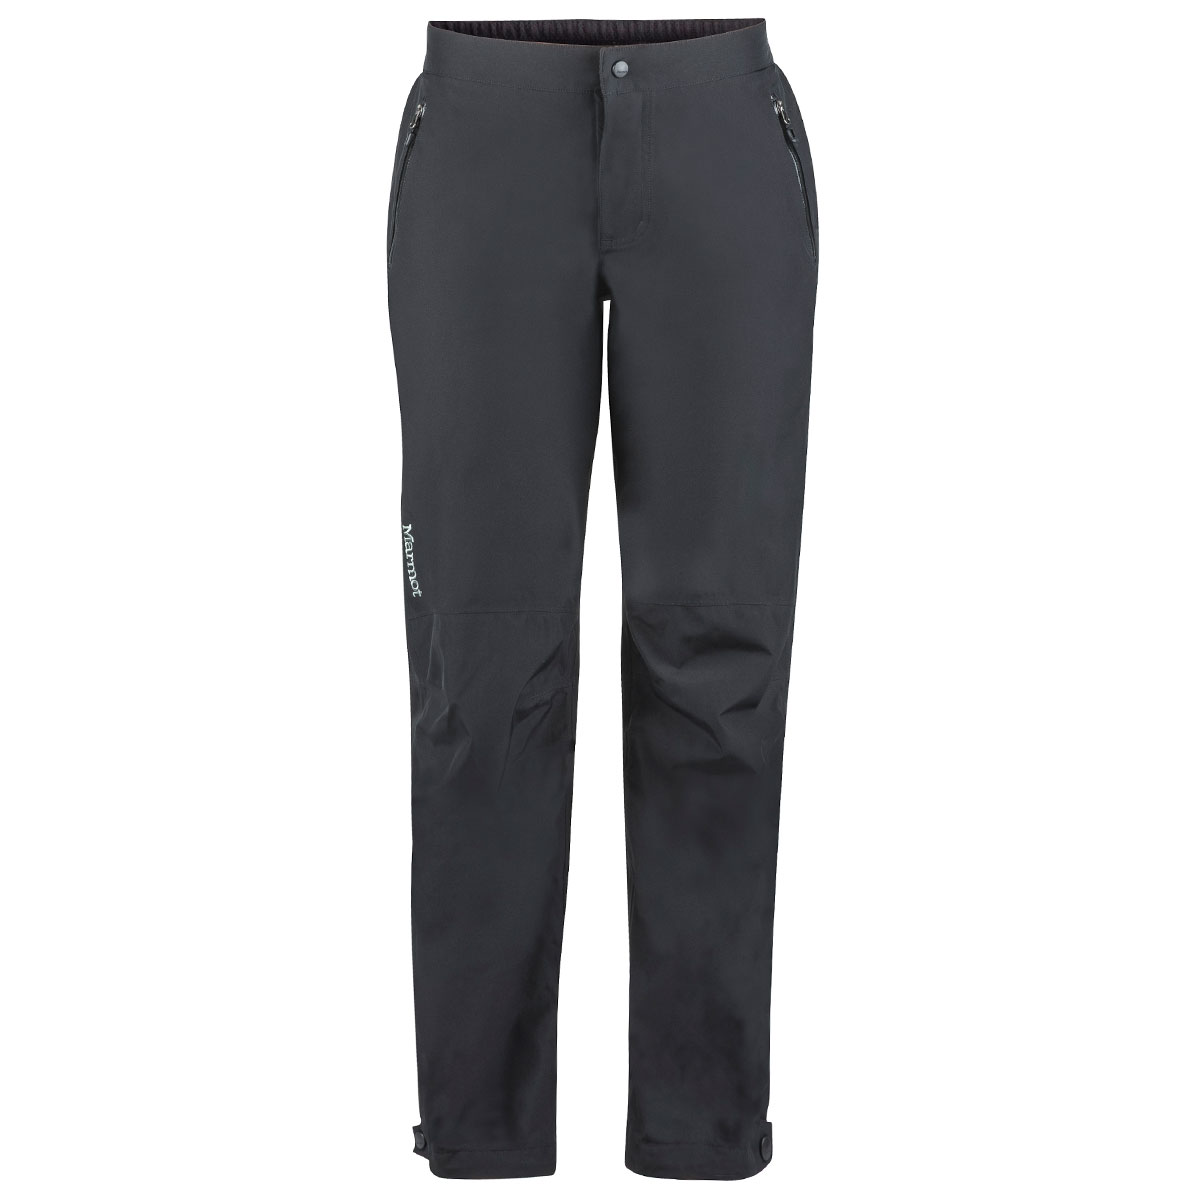 Marmot Women's Minimalist Waterproof Pants - Black, M